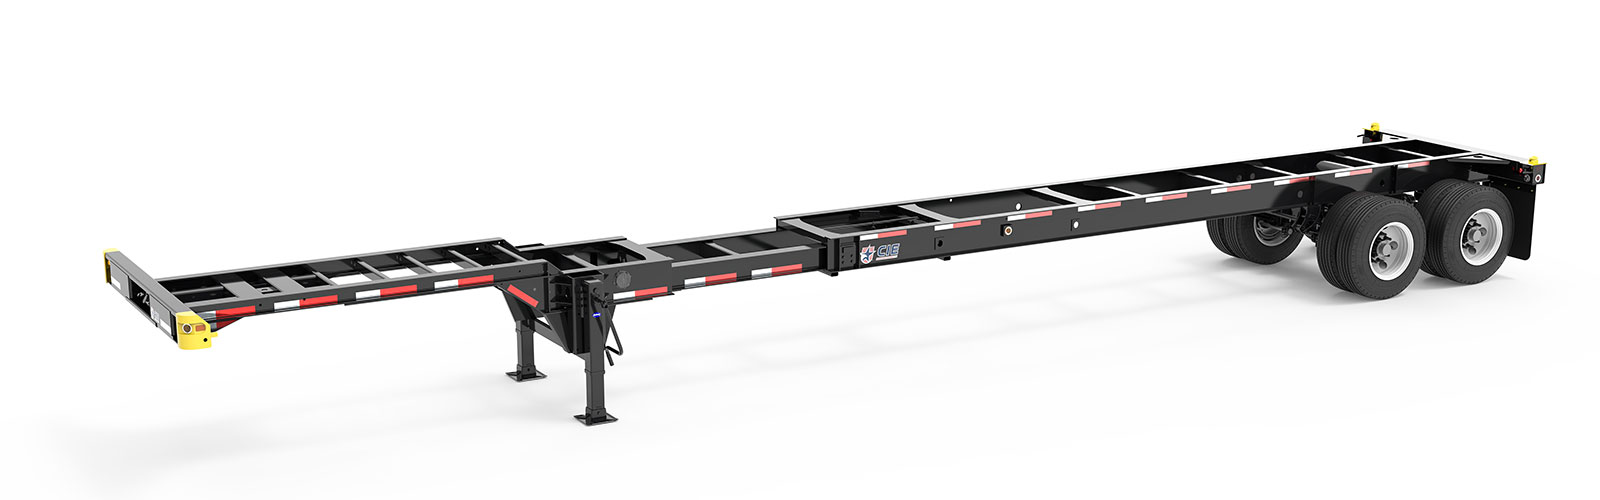 40-45' Extendable Tandem Container Chassis Angle View Final